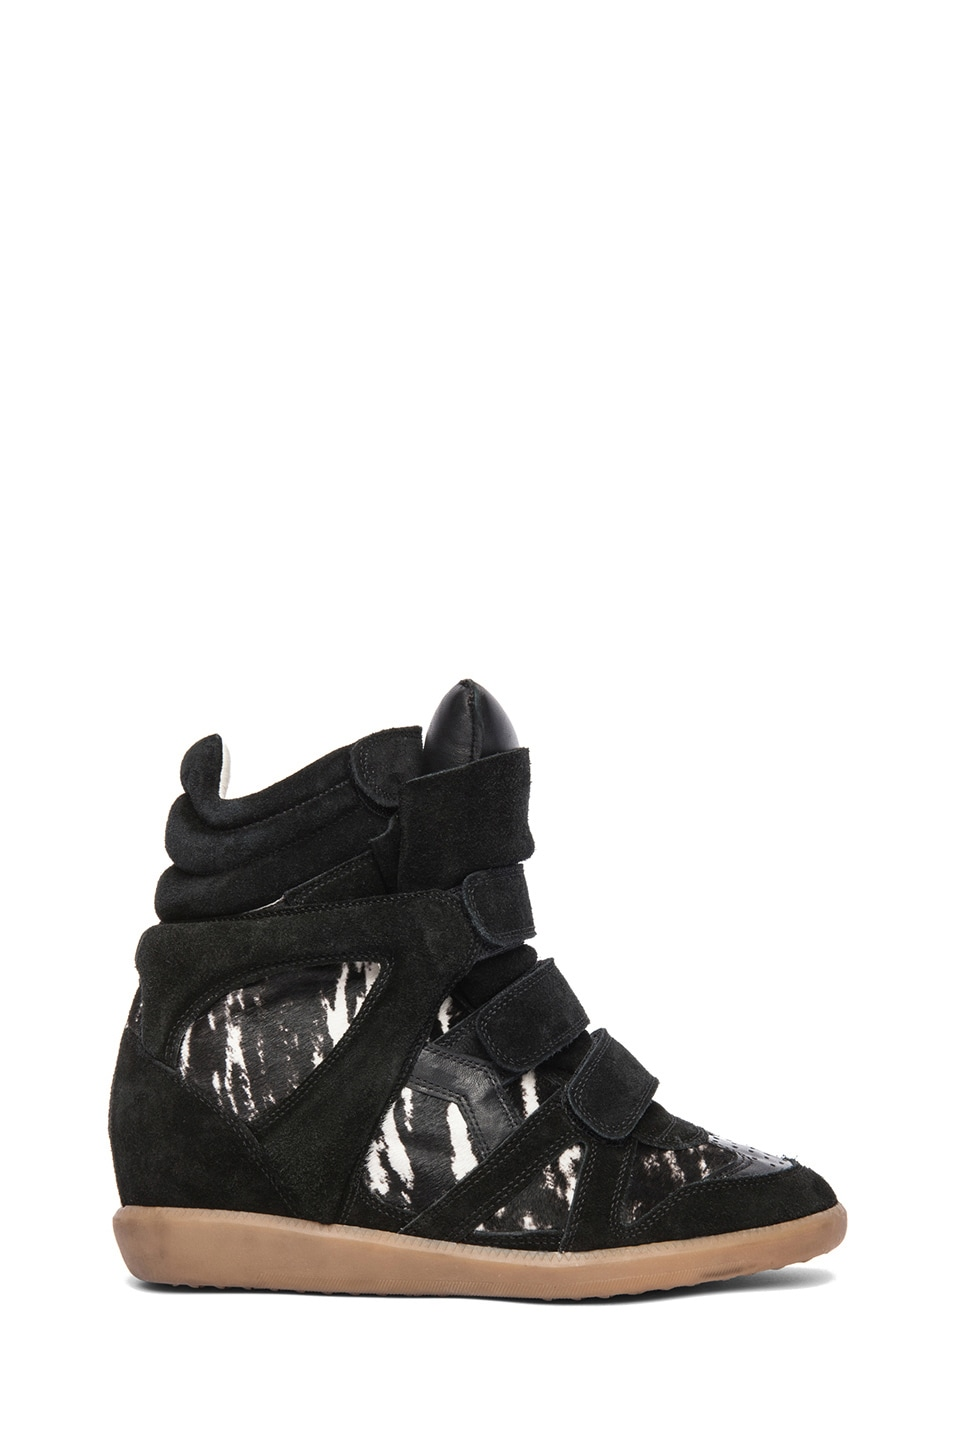 Image 1 of Isabel Marant Benett Calfskin Velvet Leather Pony Sneakers in Anthracite